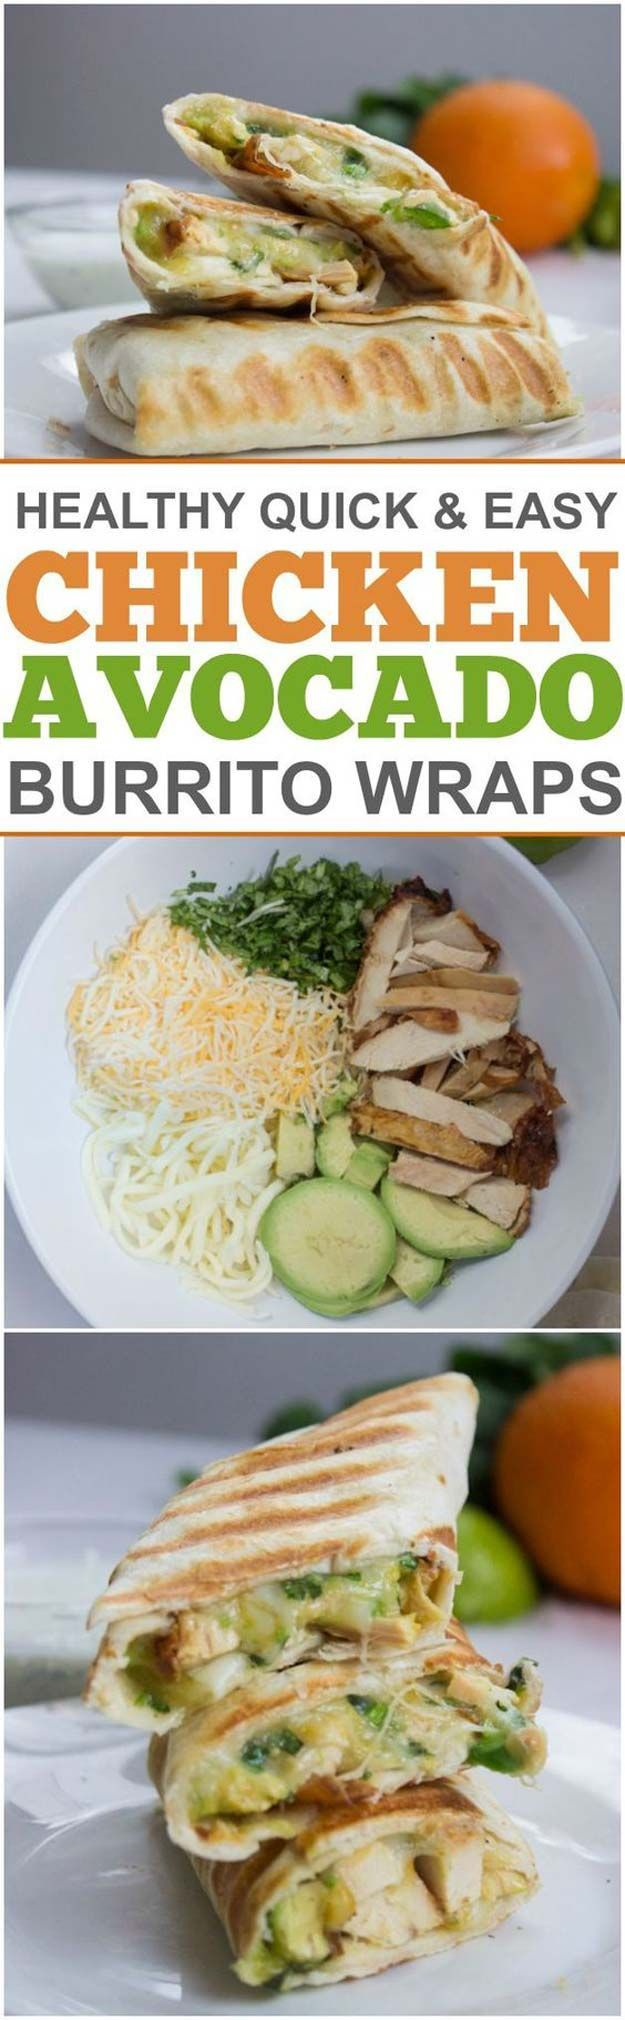 Healthy Avocado Recipes - Quick and Easy Chicken Burritos - Easy Clean Eating Recipes for Breakfast, Lunches, Dinner and even Desserts - Low Carb Vegetarian Snacks, Dip, Smothie Ideas and All Sorts of Diets - Get Your Fitness in Order with these awesome P